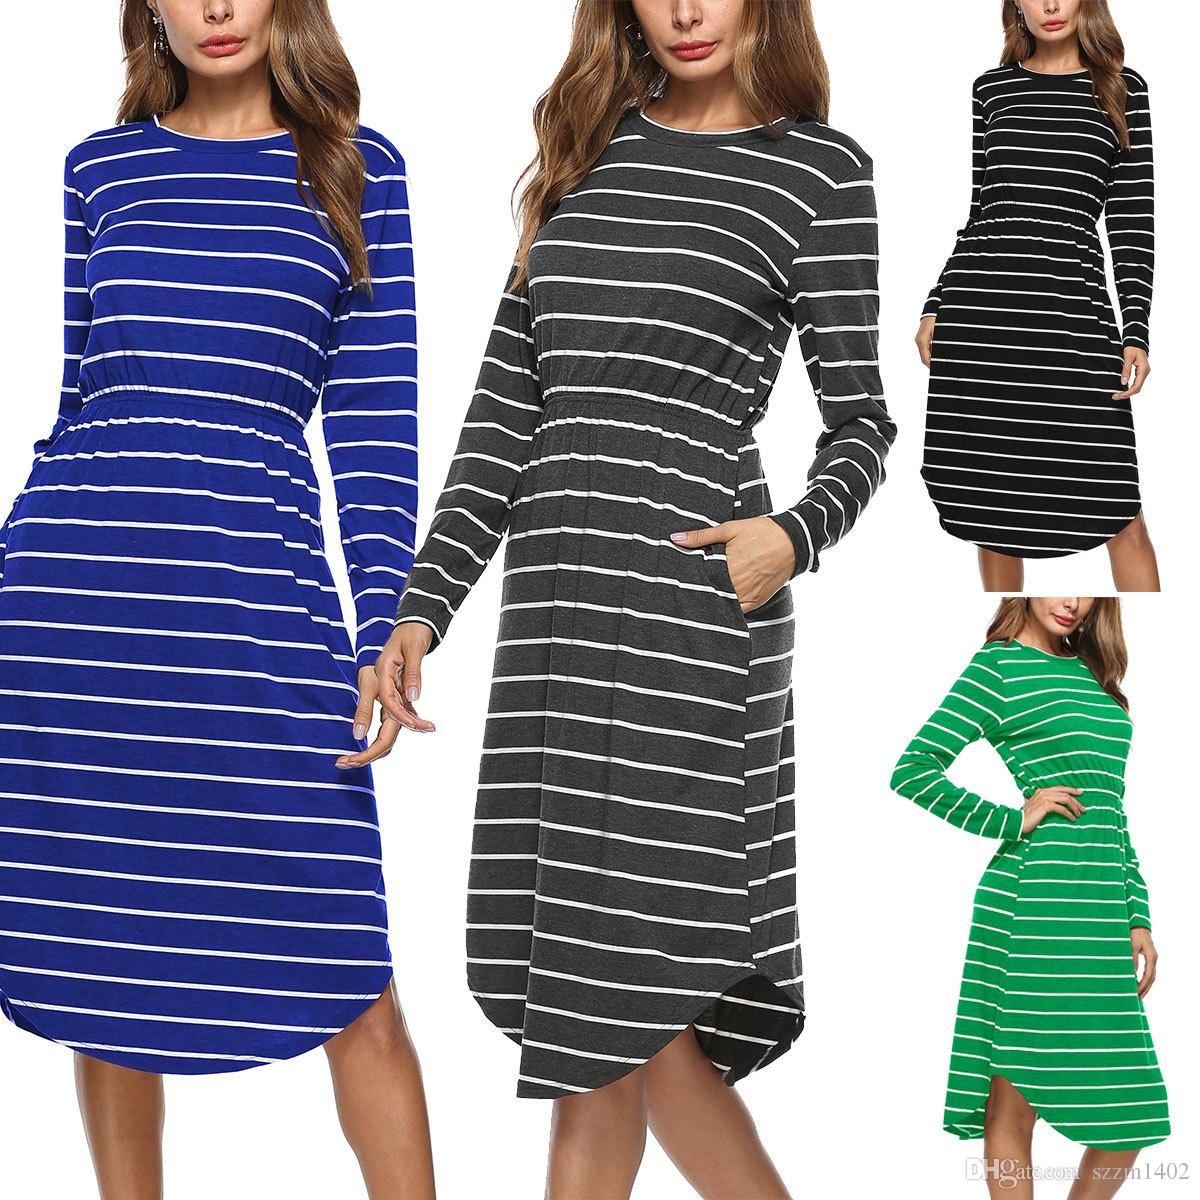 cae925dd9e3 Fashion Women Long Sleeve Striped Dress Girls Midi Empire Causal Dresses  Loose Cotton Long Skirts Plus Size For Vintage Women S Clothing Black And  Gold ...